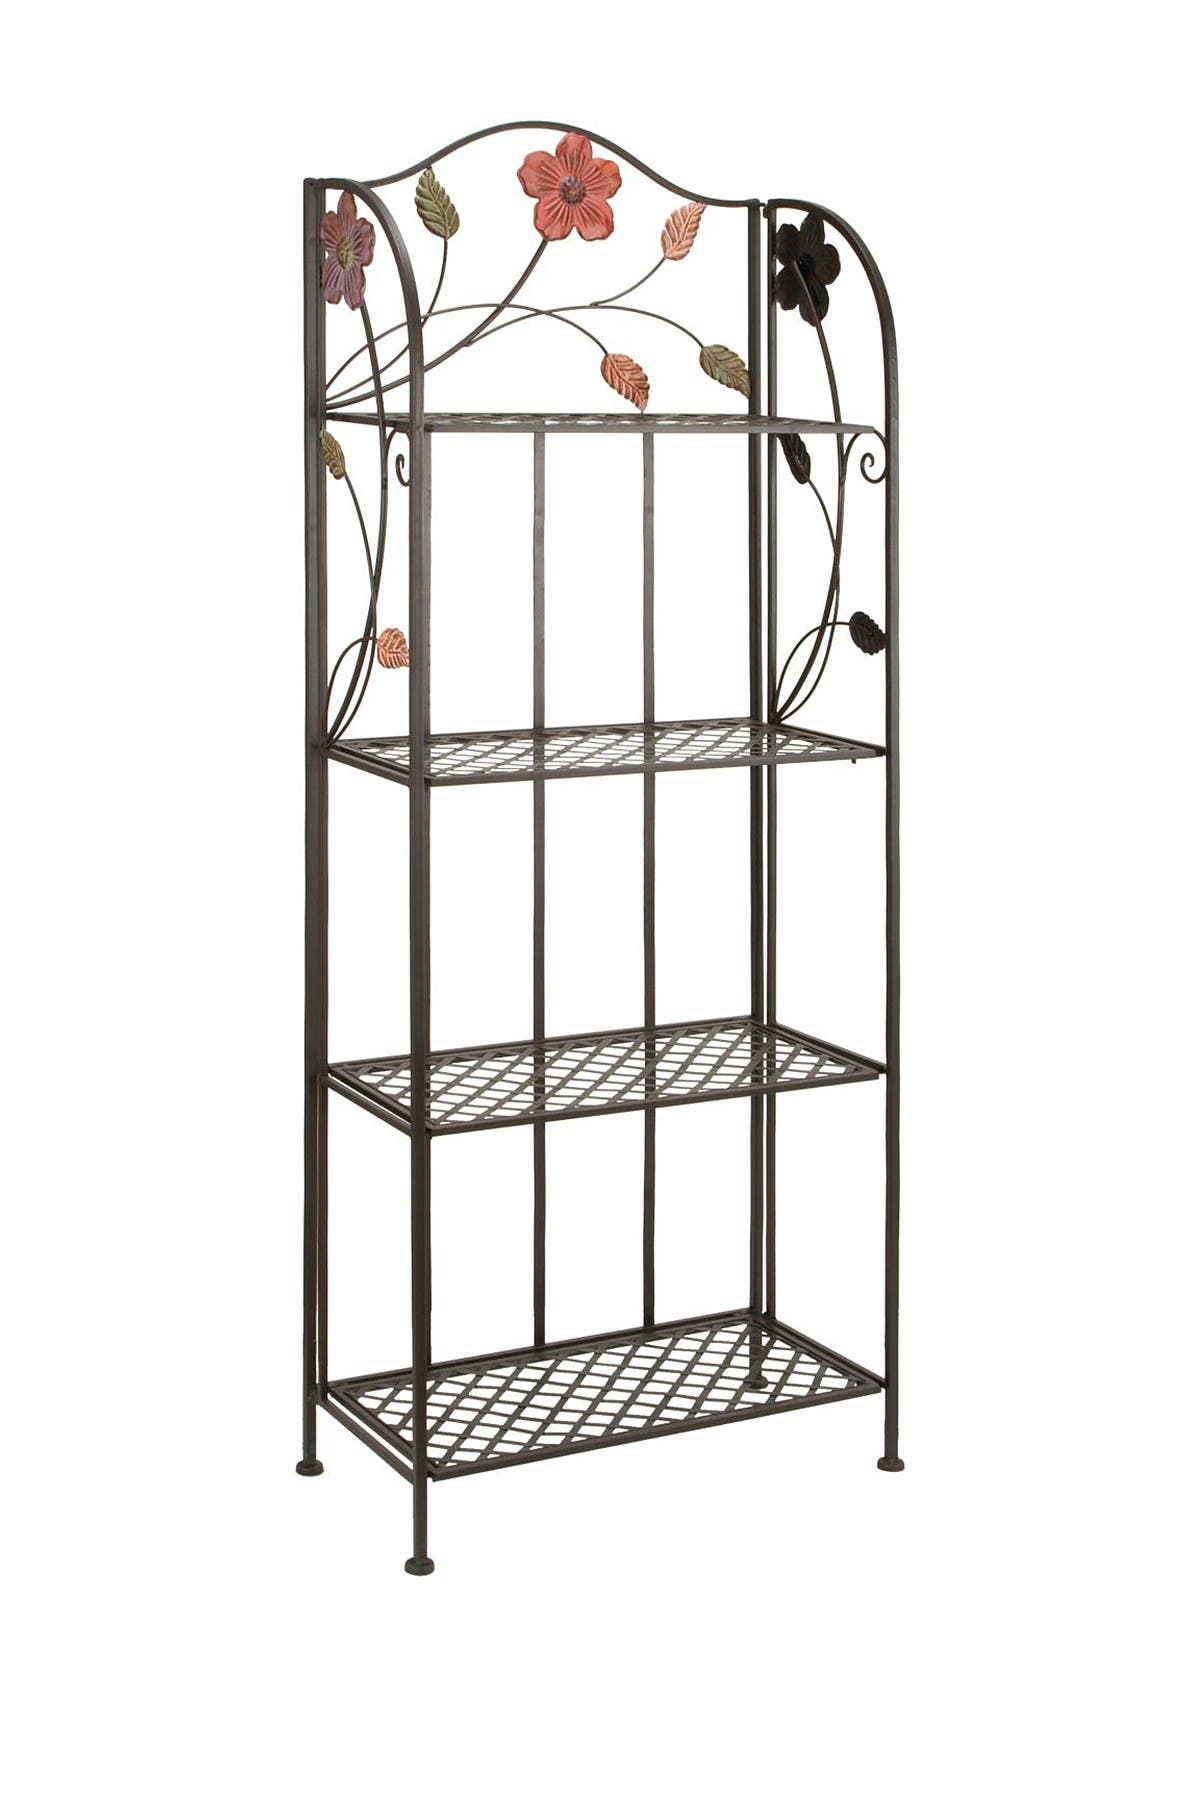 Image of Willow Row Floral Baker's Rack